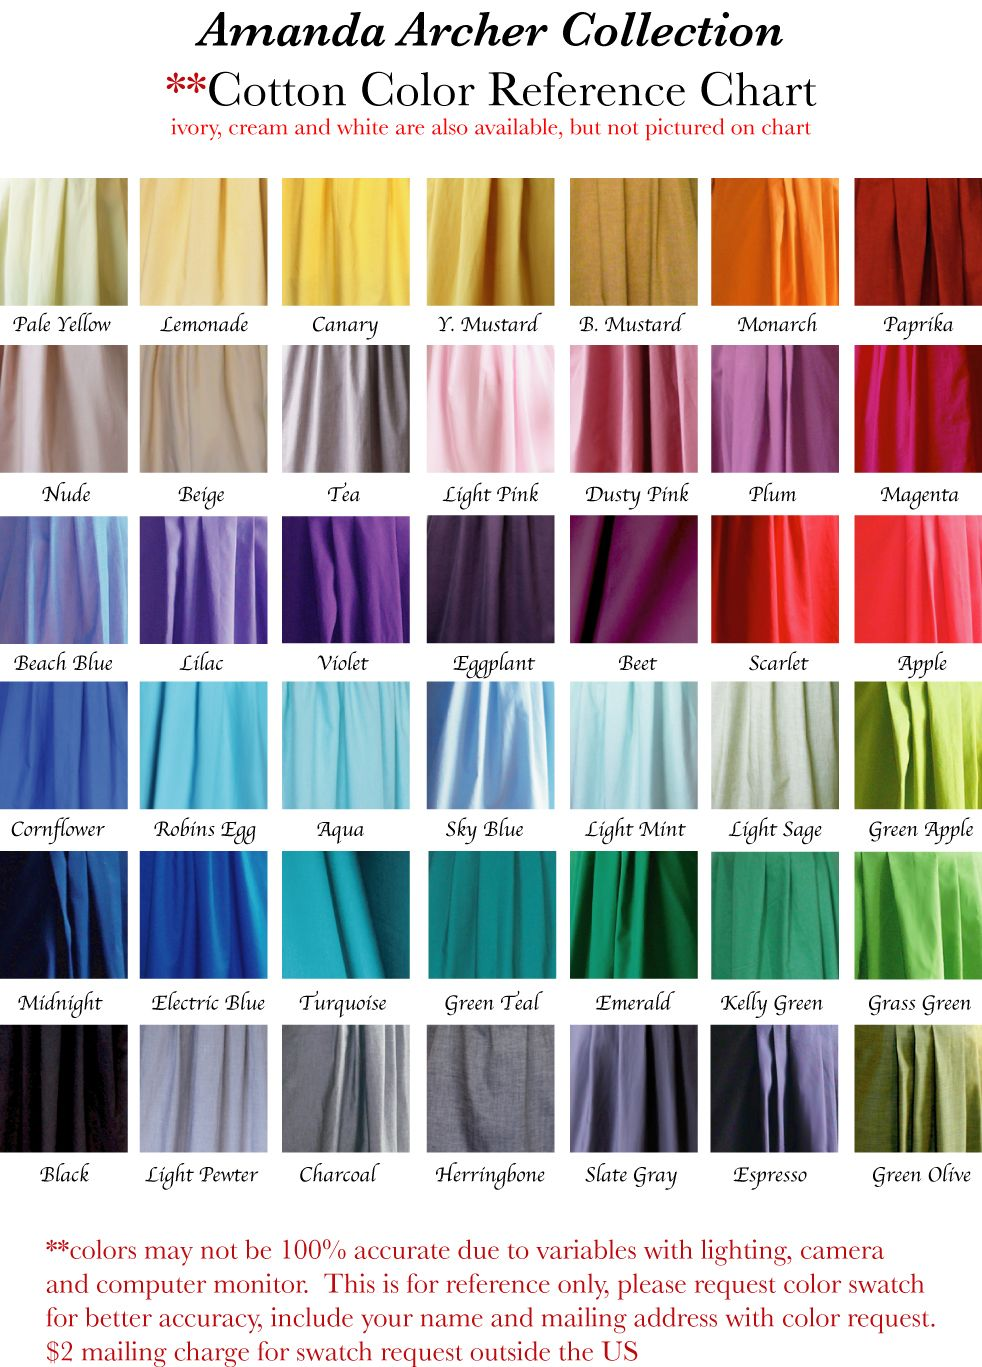 Cotton color reference chart for the one day and what fallows amanda archer on etsy makes bridesmaid dresses 12 styles and 40 colors ombrellifo Images